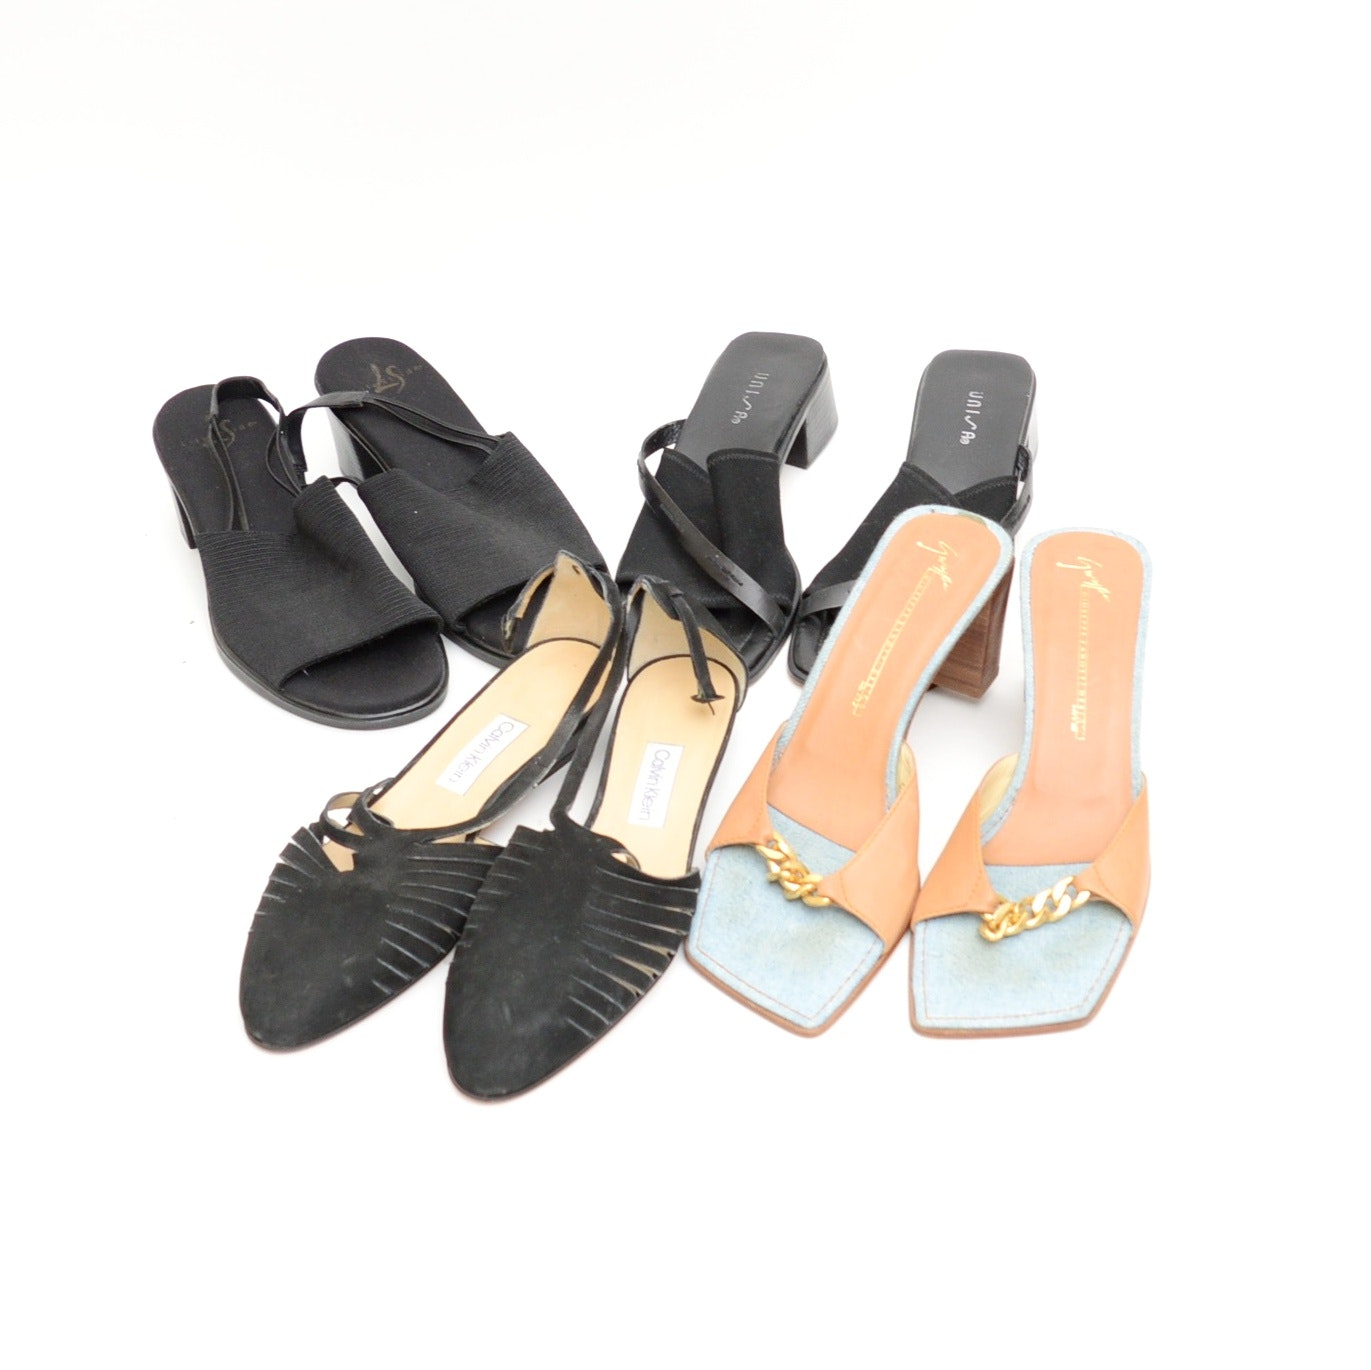 Collection of Women's Sandals